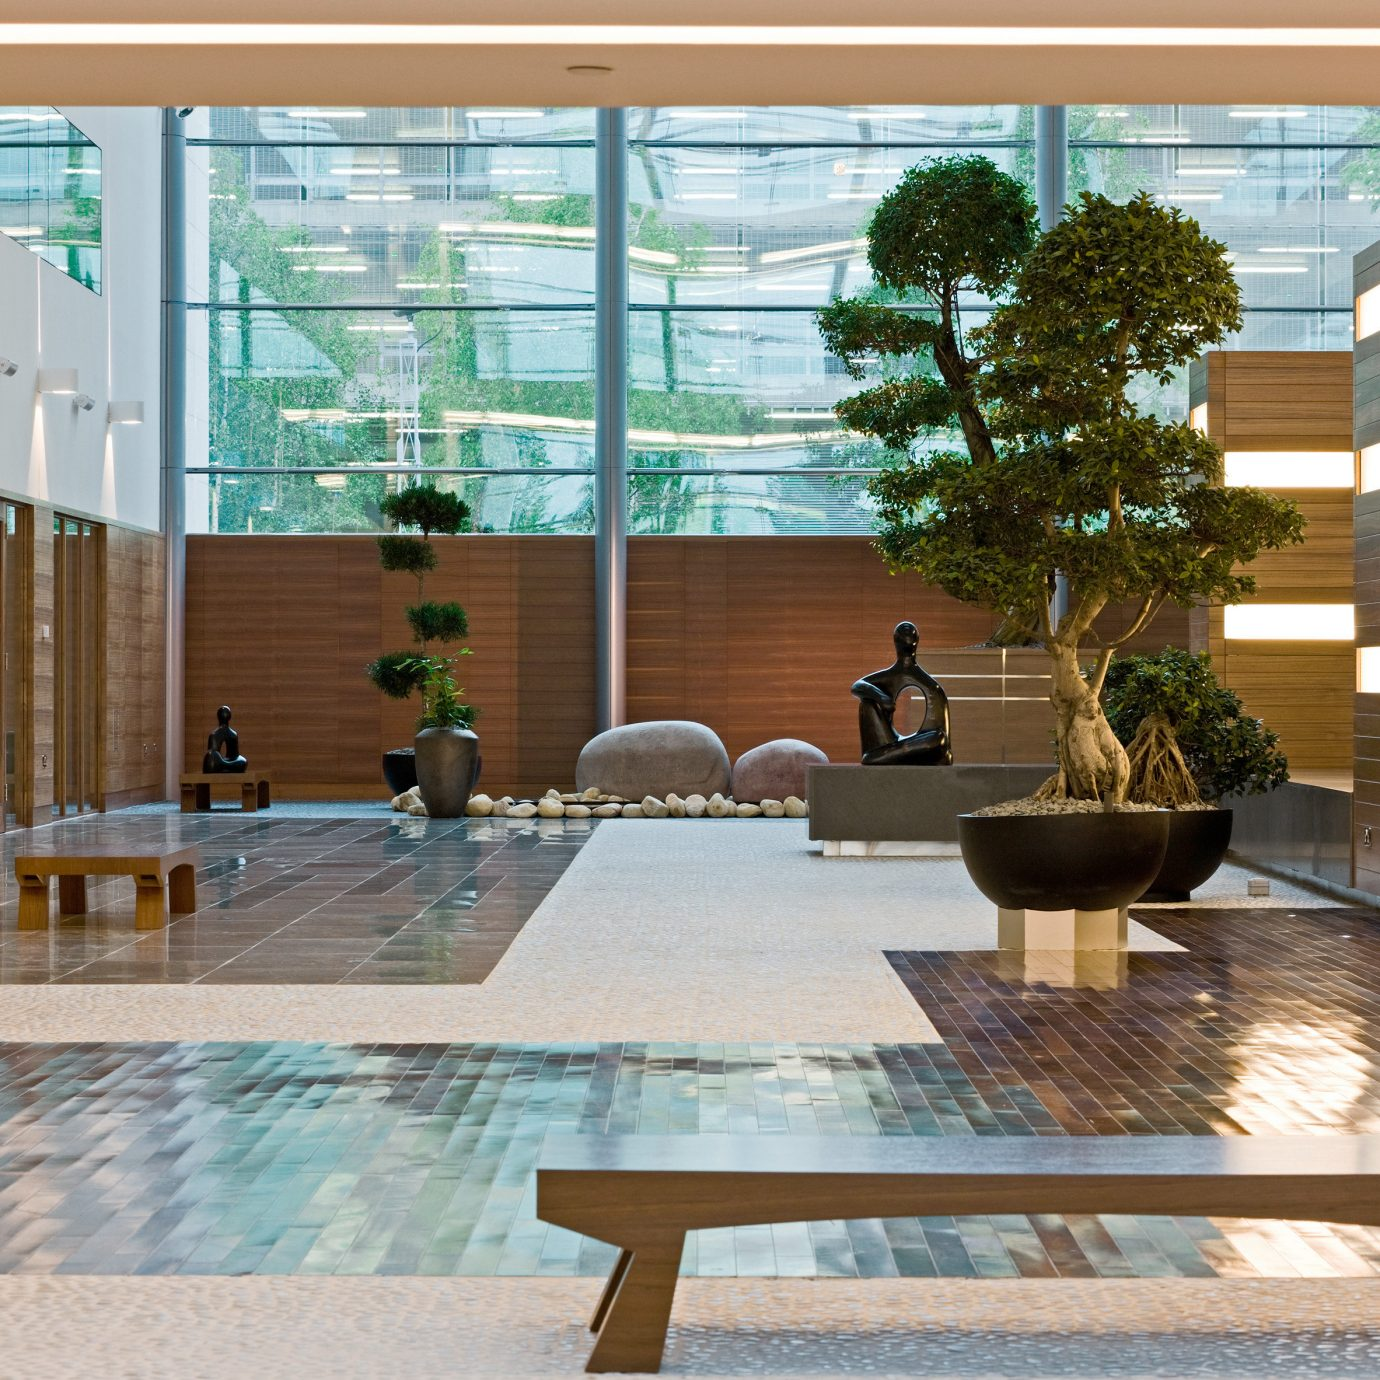 Architecture Lounge Resort Lobby property condominium home living room Courtyard outdoor structure